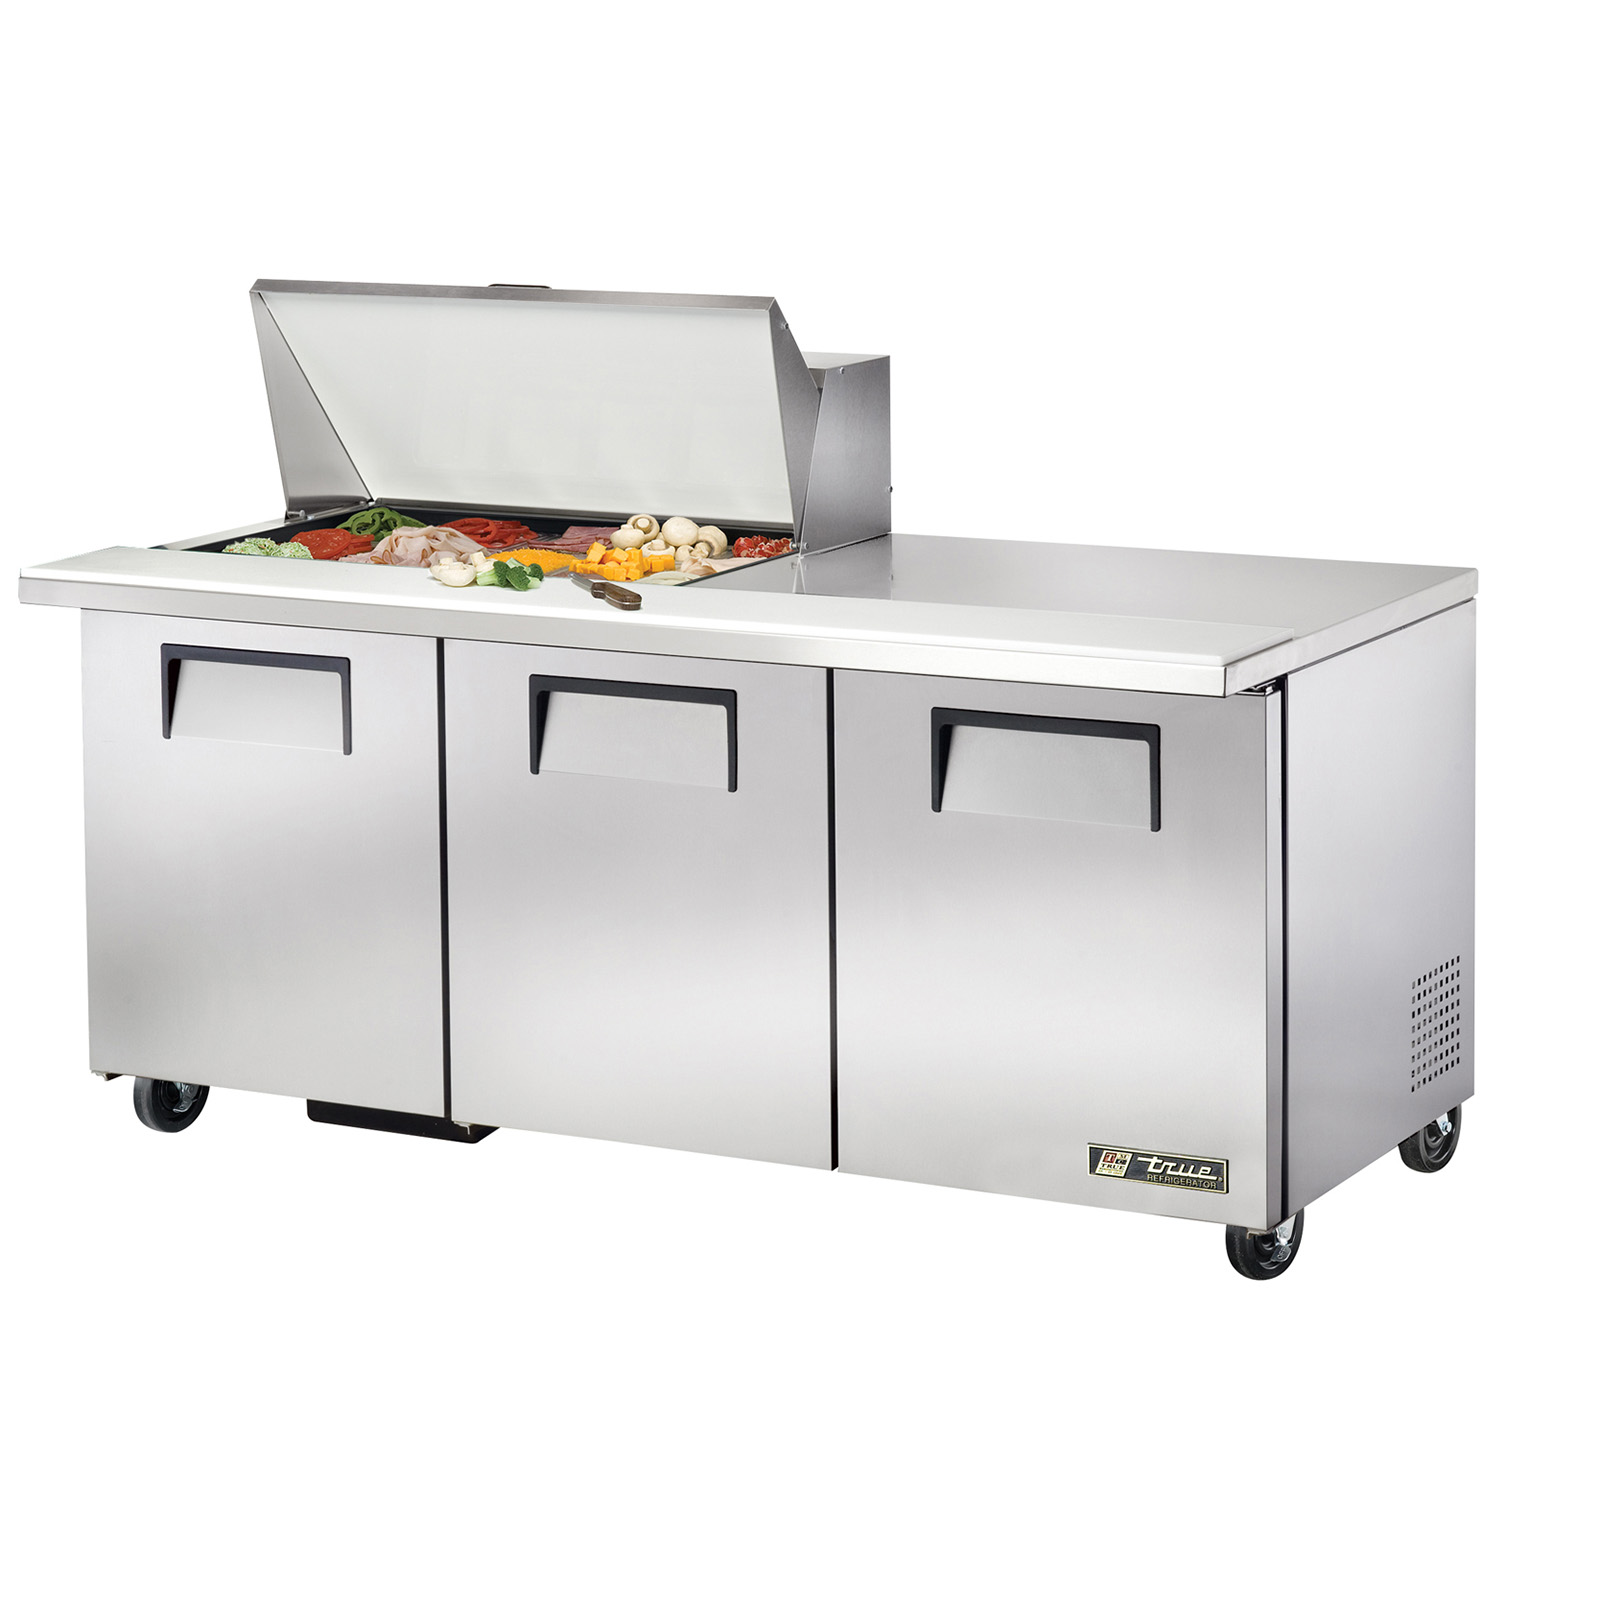 TSSU-72-15M-B True - Mega Top Sandwich/Salad Unit (15) 1/6 size (4